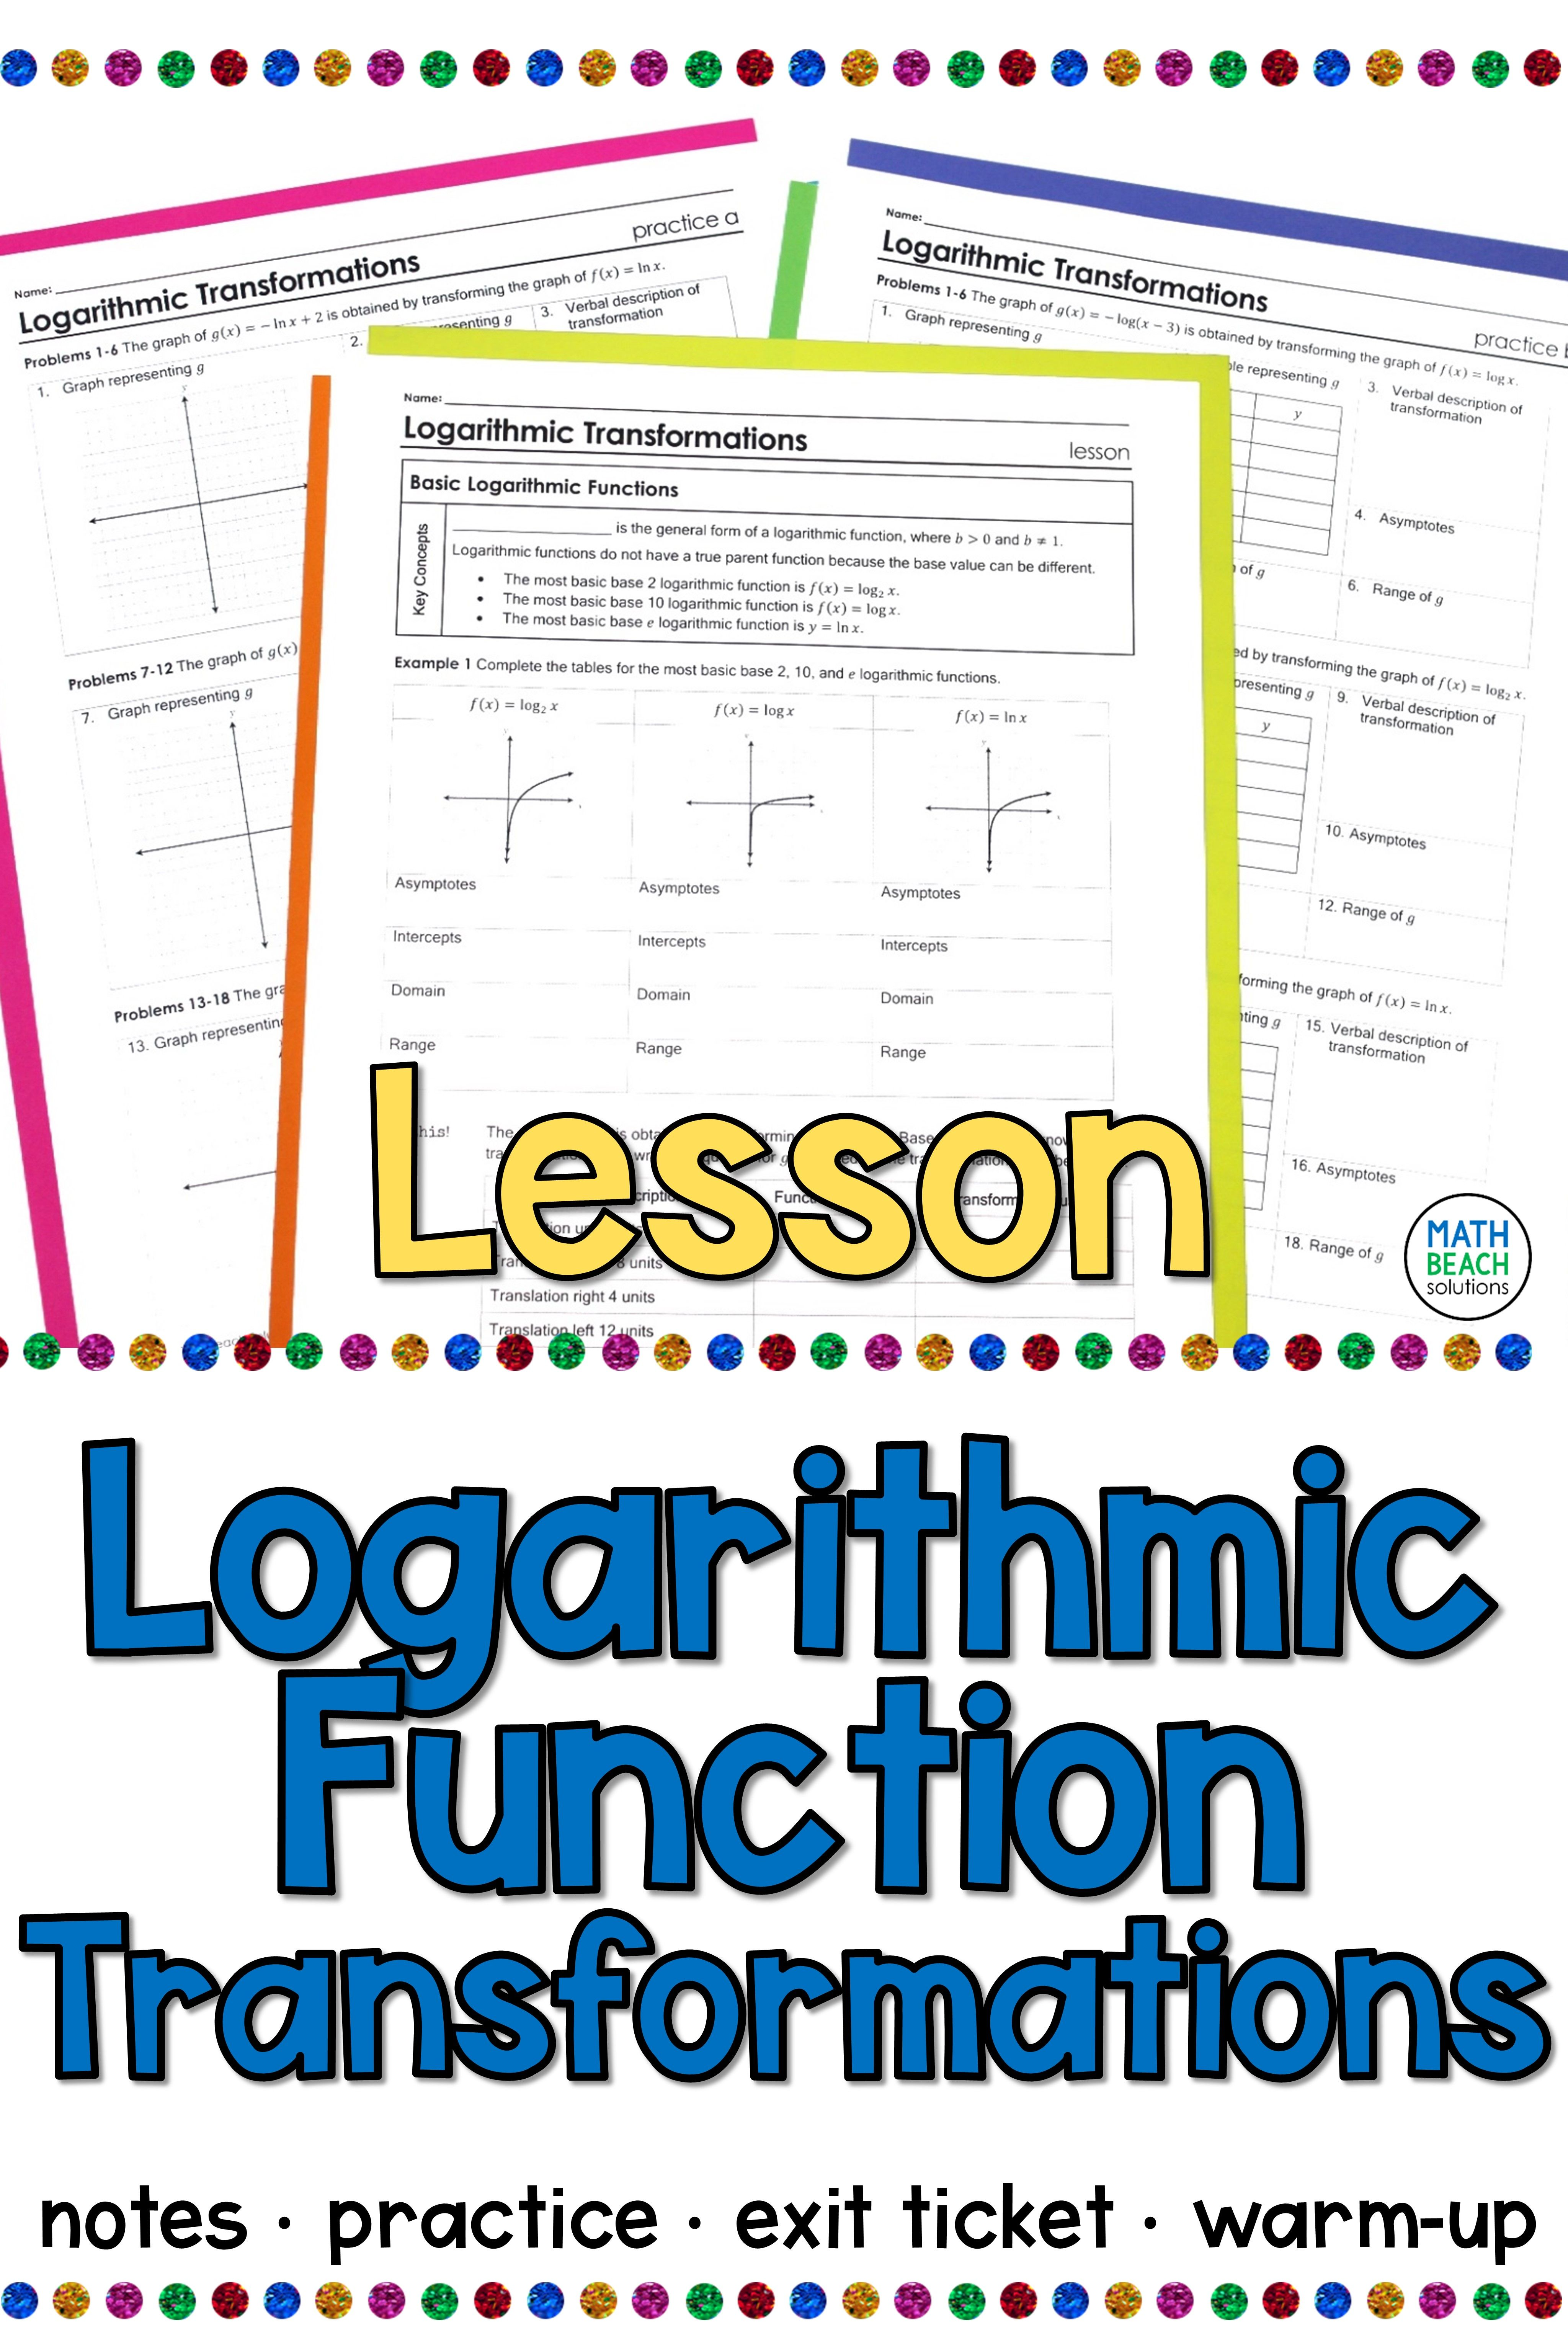 Logarithmic Function Transformations Lesson Exponential Functions Word Problem Worksheets Algebra Lesson Plans